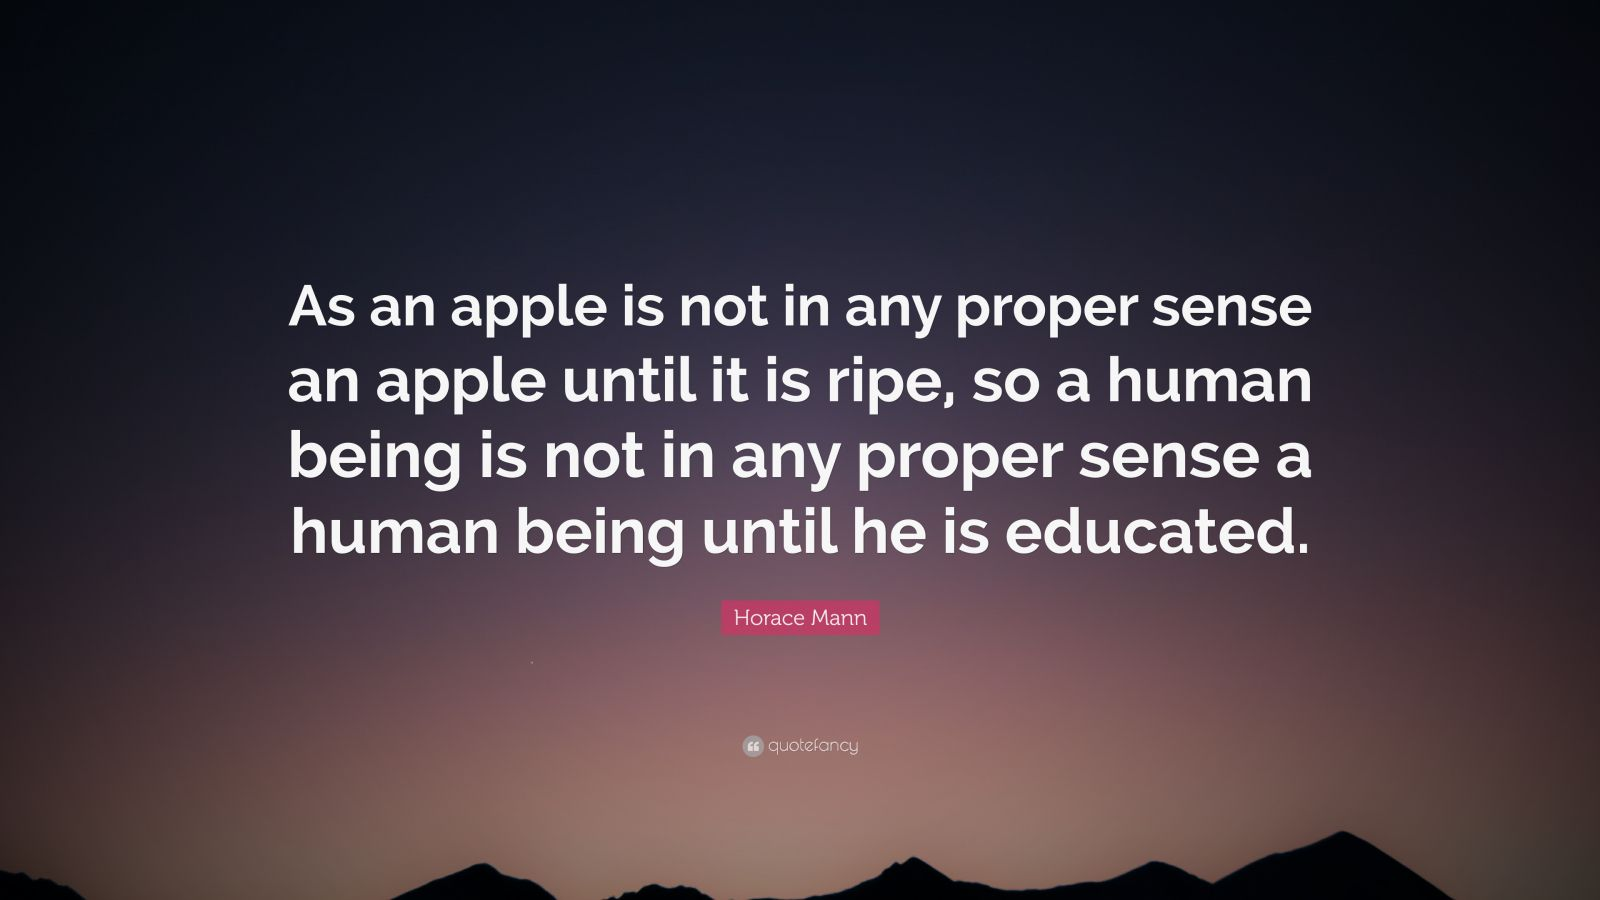 """Horace Mann Quote: """"As an apple is not in any proper sense an apple until it is ripe, so a human being is not in any proper sense a human being until he is educated."""""""